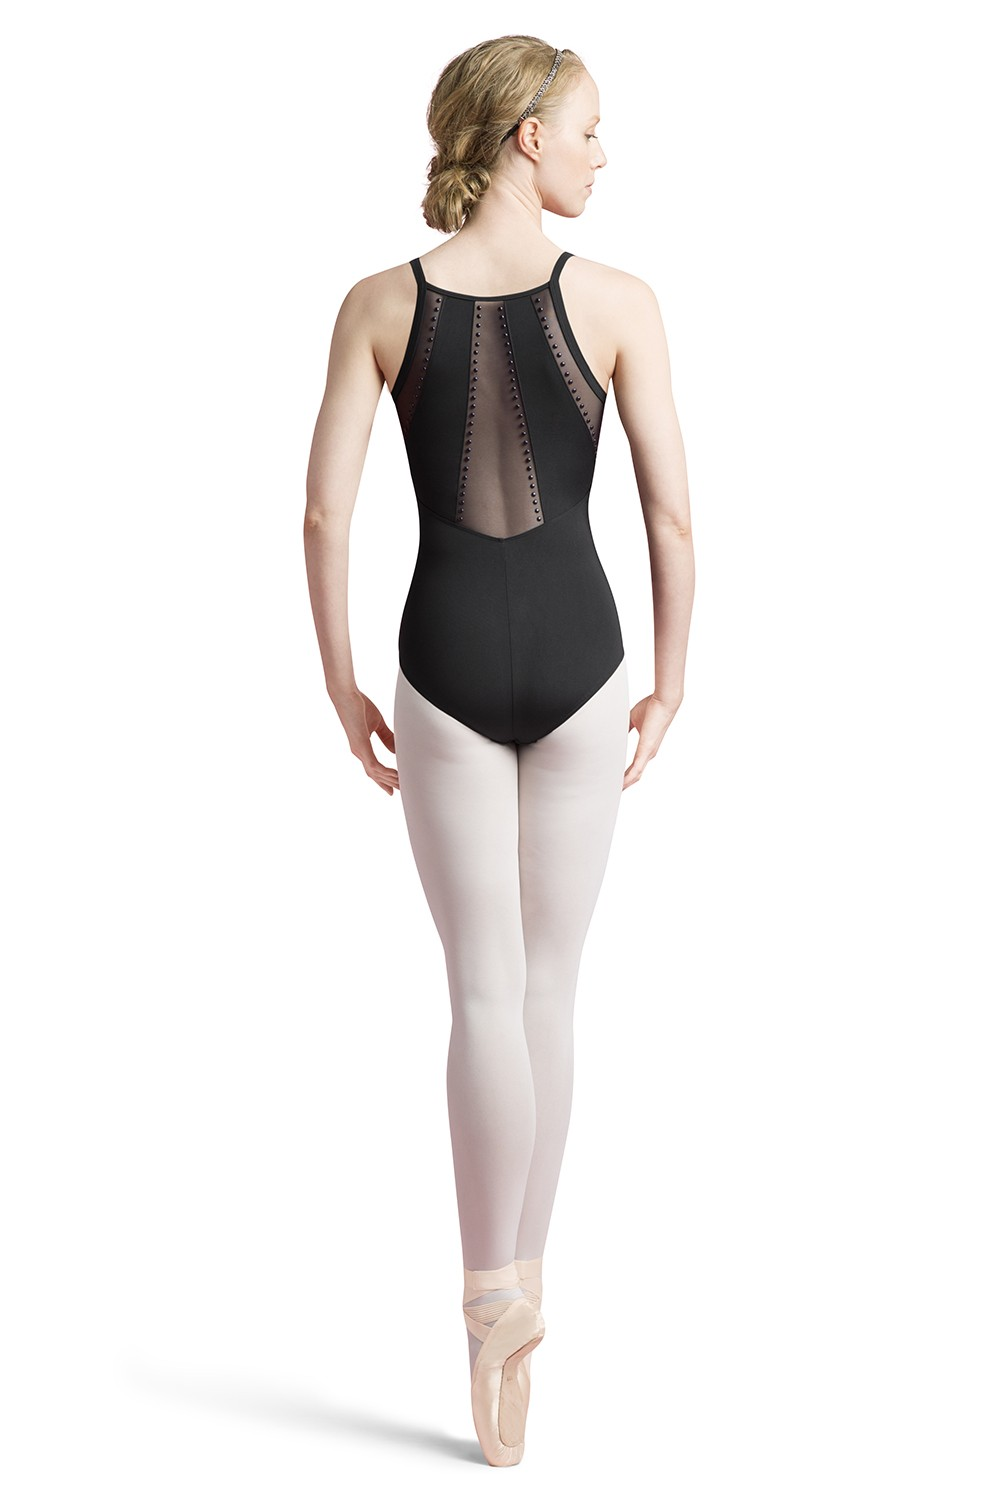 Kalle Women's Dance Leotards